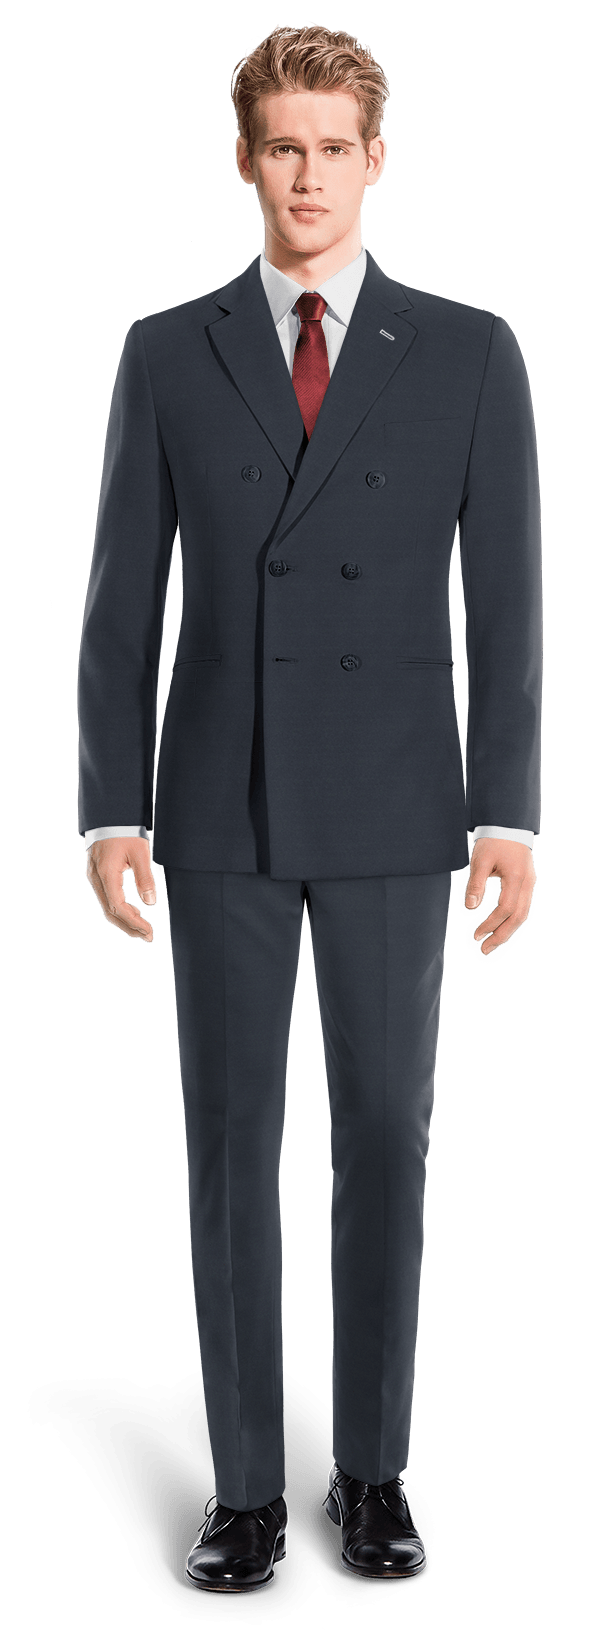 Blue Double breasted wool Suit $300 - Tarpon Blue | Hockerty